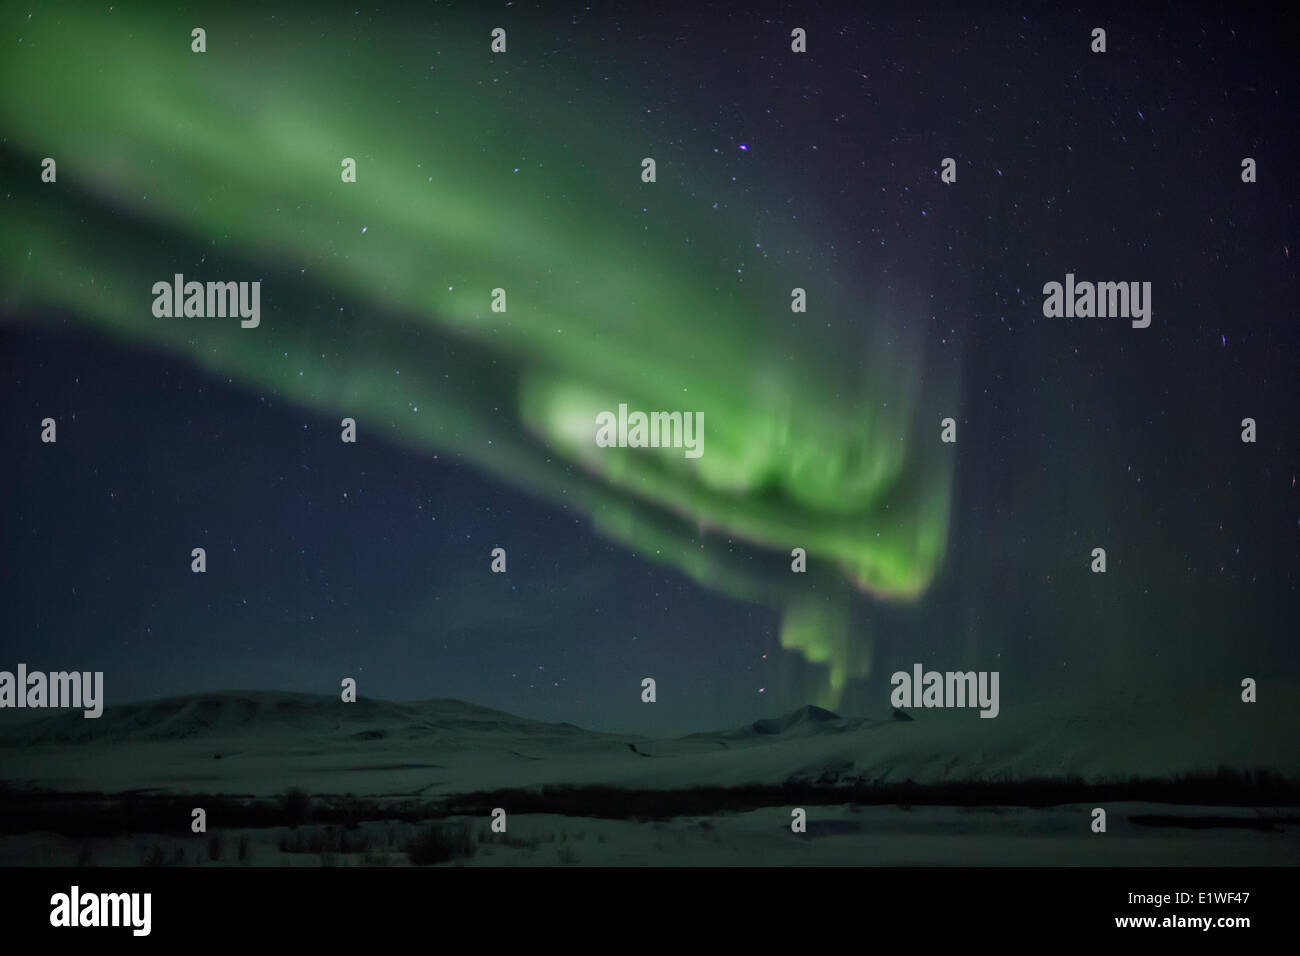 Northern lights or aurora borealis shimmer in the sky above the Dempster Highway. - Stock Image